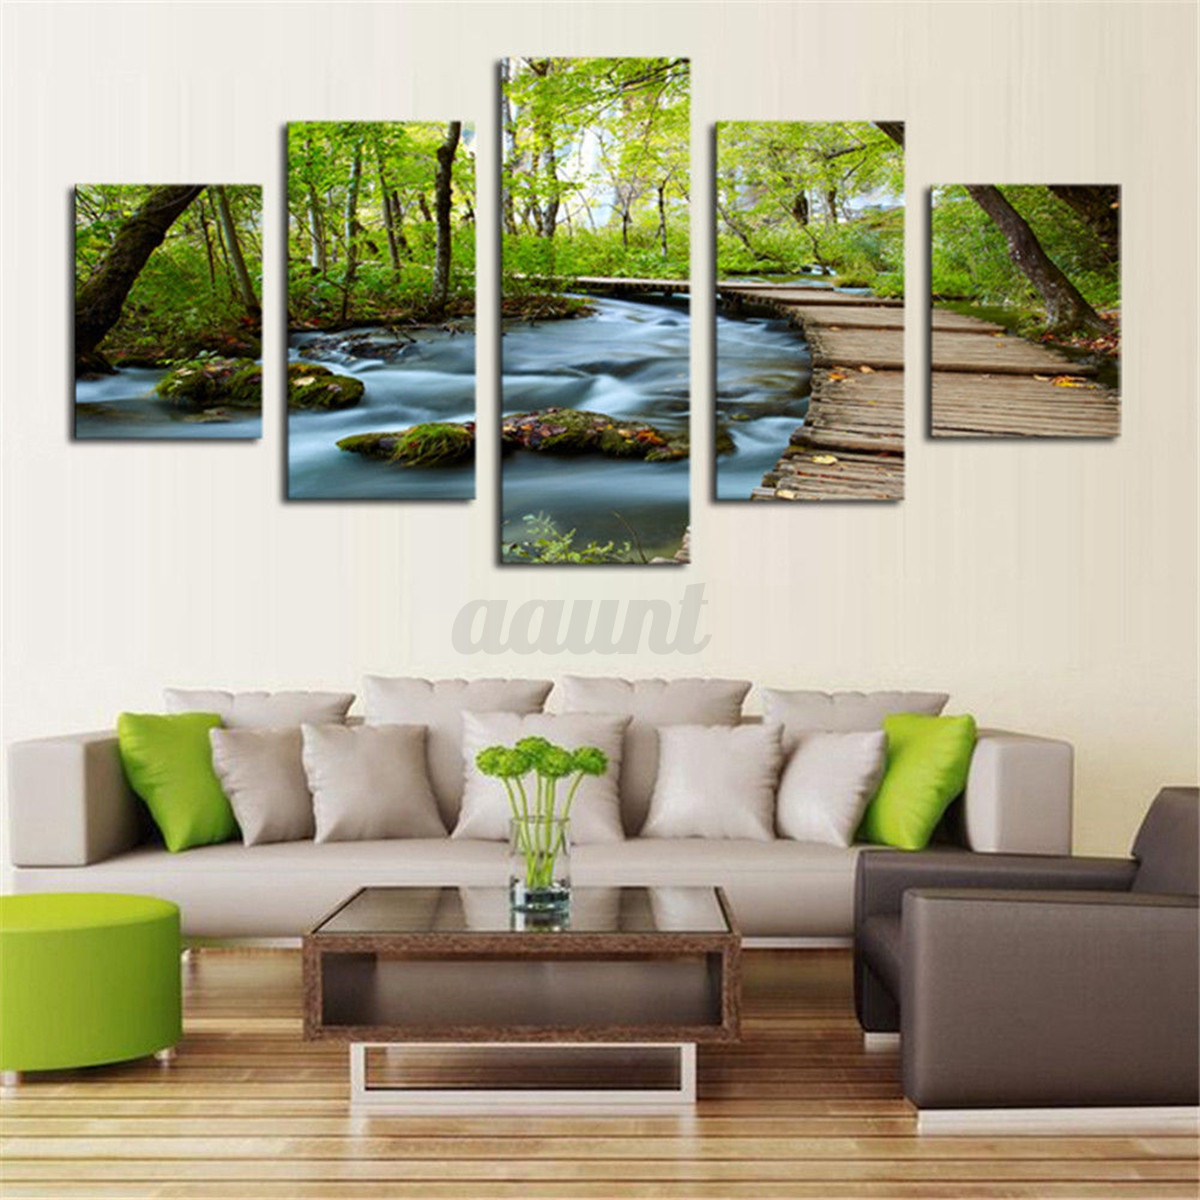 Living room canvas print wall art oil painting picture mural home decor unframed Canvas prints for living room